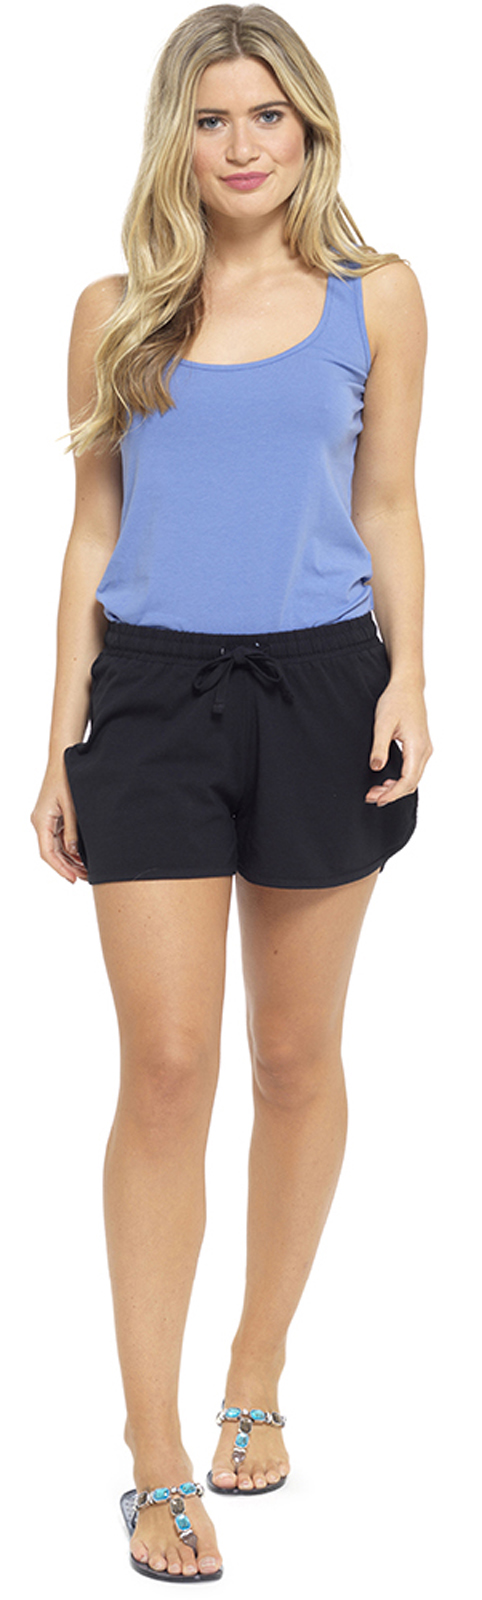 Cotton Shorts. Put together the perfect warm weather look with the right type of cotton shorts. An essential in your spring and summer closet, these casual bottoms are easy to dress up or down with different types of 0549sahibi.tkr you're heading to lunch with friends or running some errands, these are a must-have on warmer days.